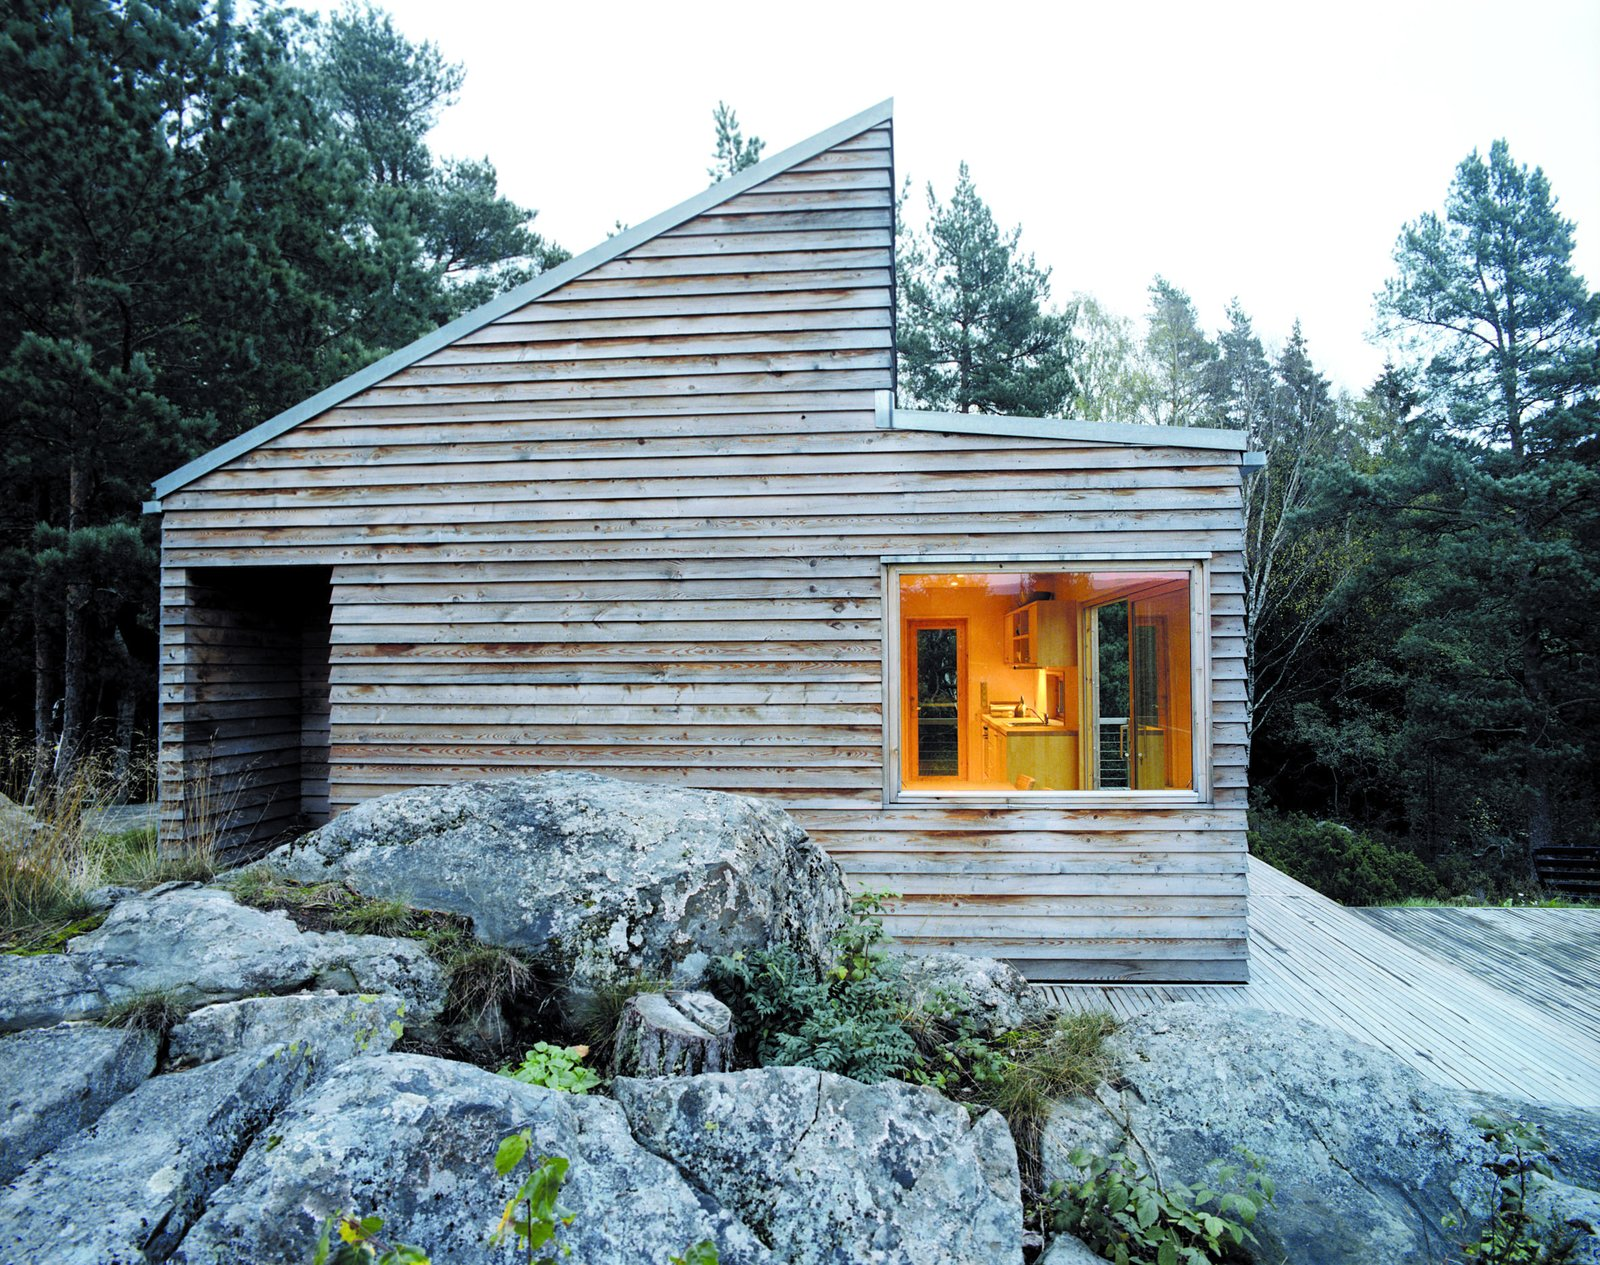 Woody35's distinct shape makes it stand out from its surroundings despite the modest size of the building. Tagged: Outdoor, Wood Siding Material, House, Boulders, Side Yard, Large Patio, Porch, Deck, and Wood Patio, Porch, Deck.  Sourcing Guide for Modern Prefab Companies in Europe by Kelsey Keith from A Prefab Cabin in Norway